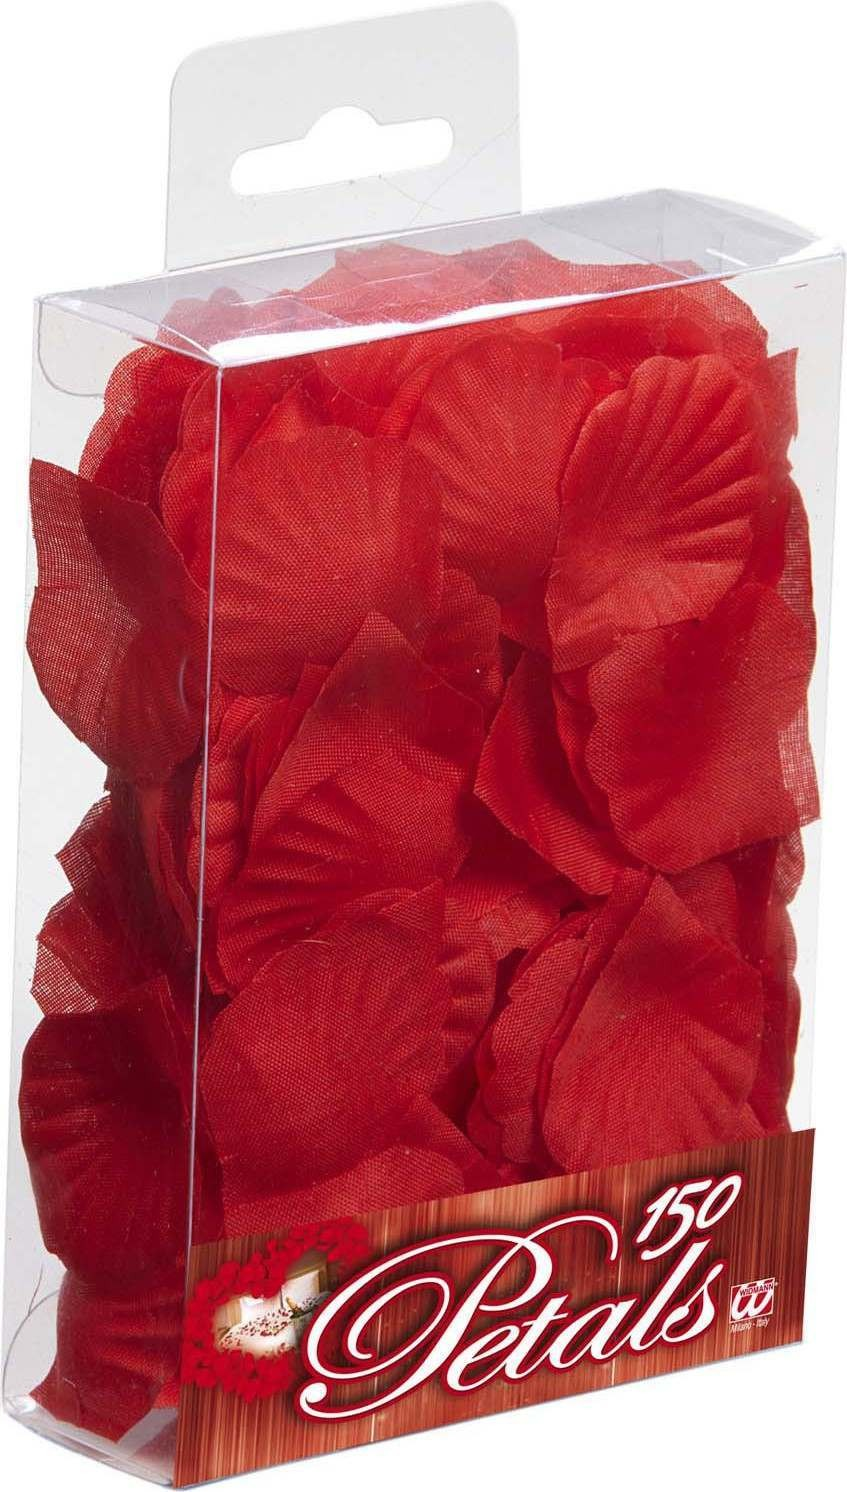 Boxes Of 150 Petals - Red - (Red)